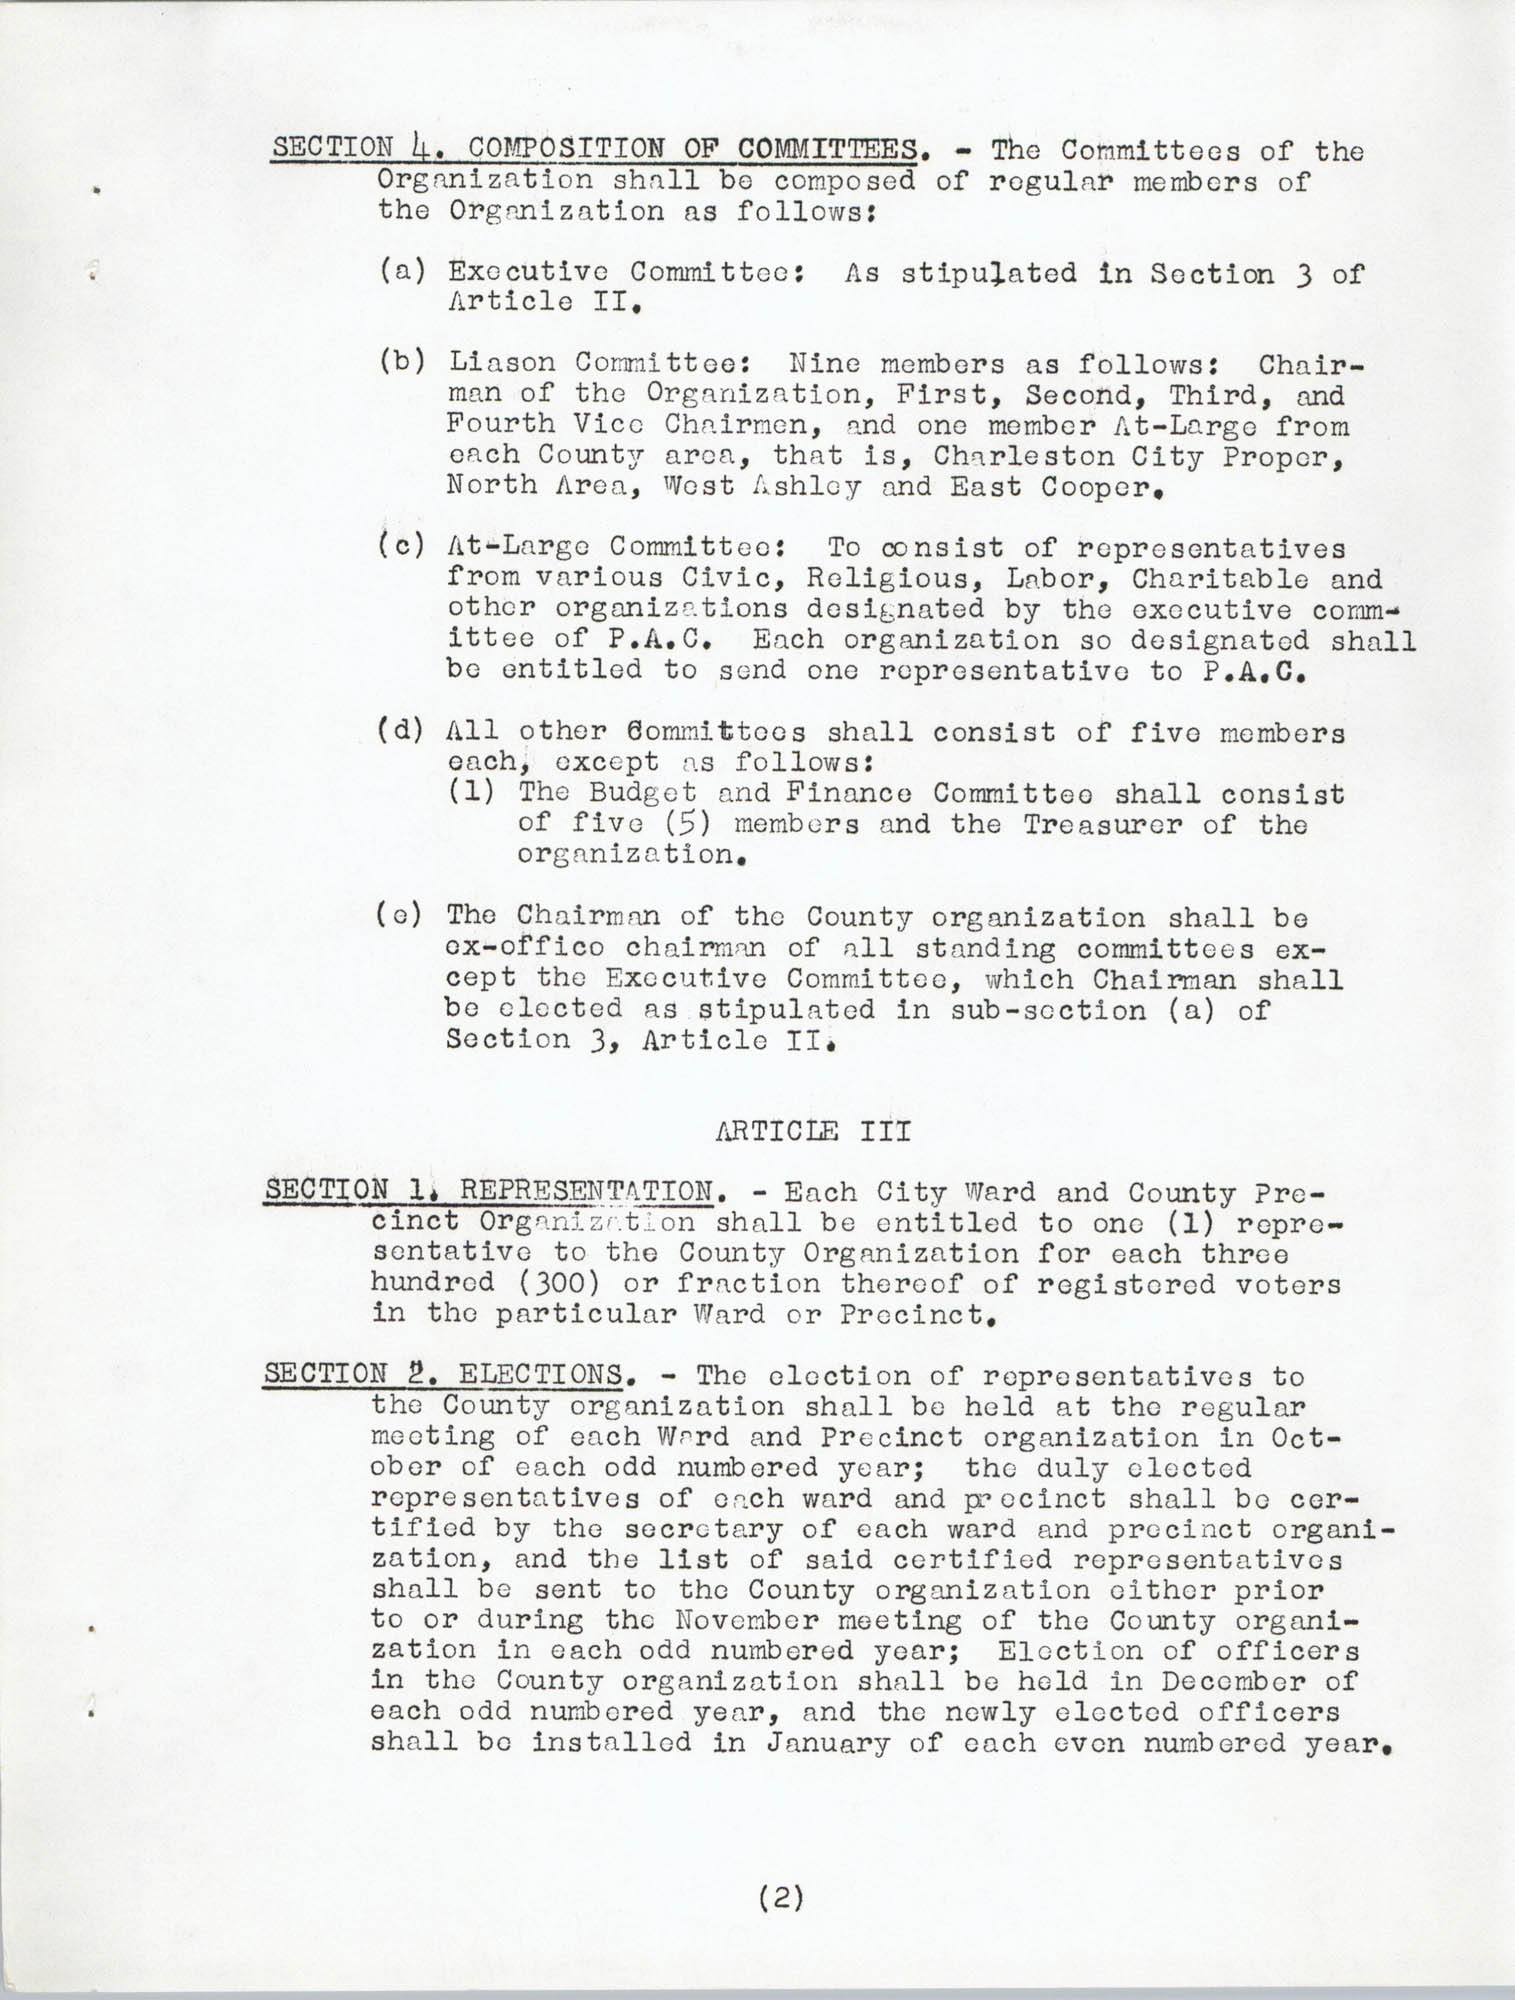 Constitution and By-Laws, Page 2